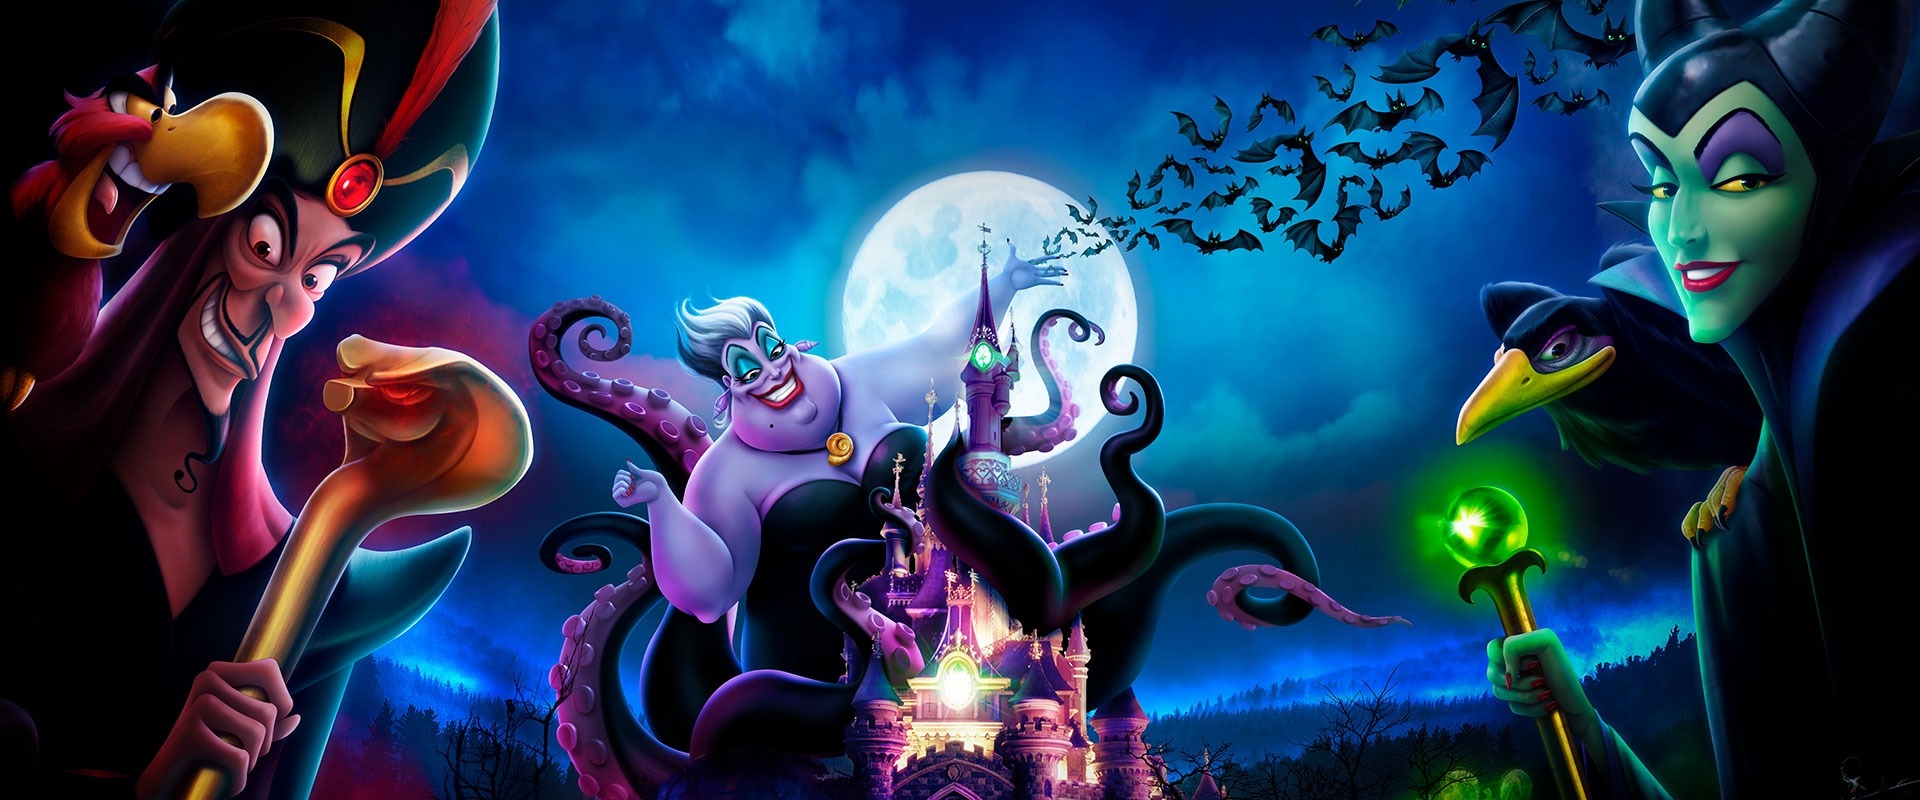 hd14513_2050dec31_world_halloween-party-2019-key-visual_5-21